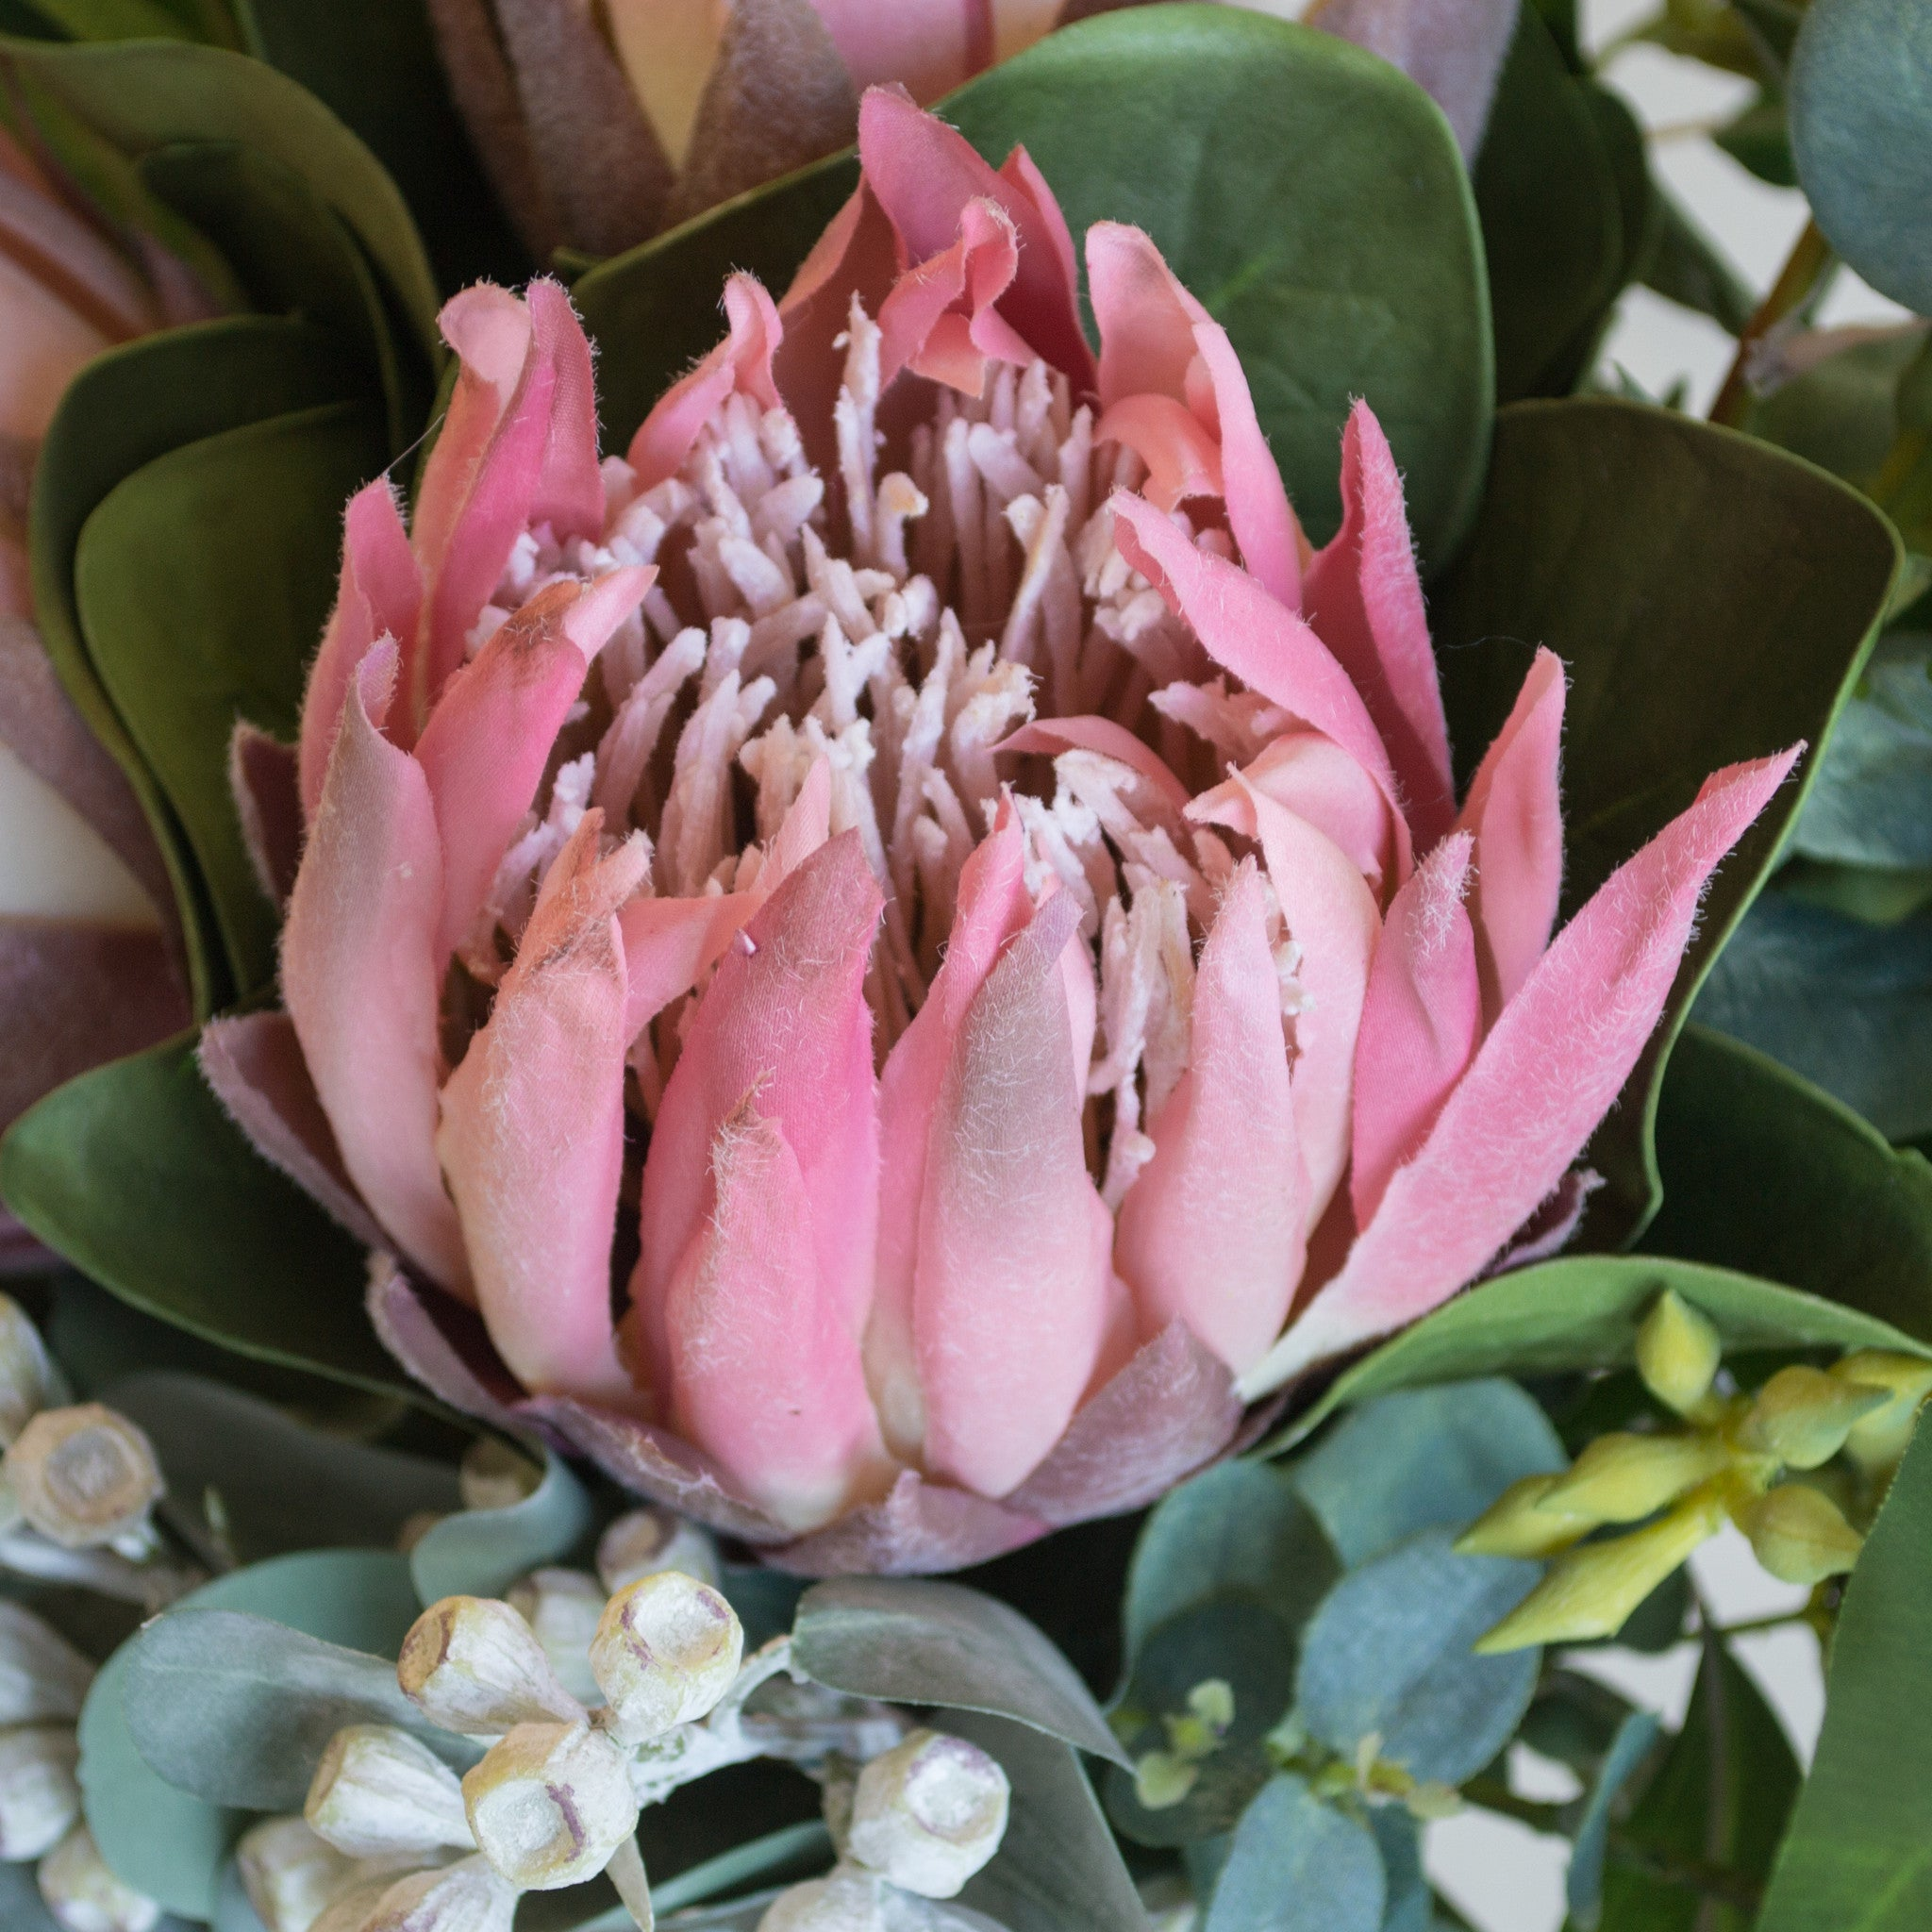 Pink protea, eucalyptus and tetra nuts